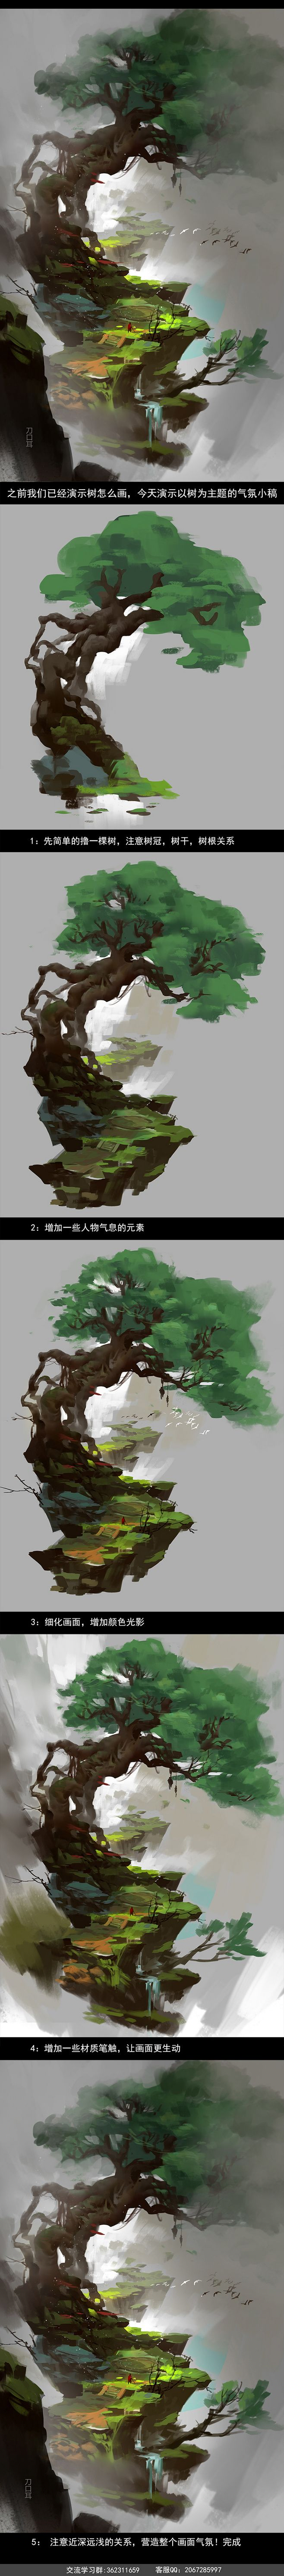 1000 Ideas About Tree Drawings On Pinterest How To Draw Trees